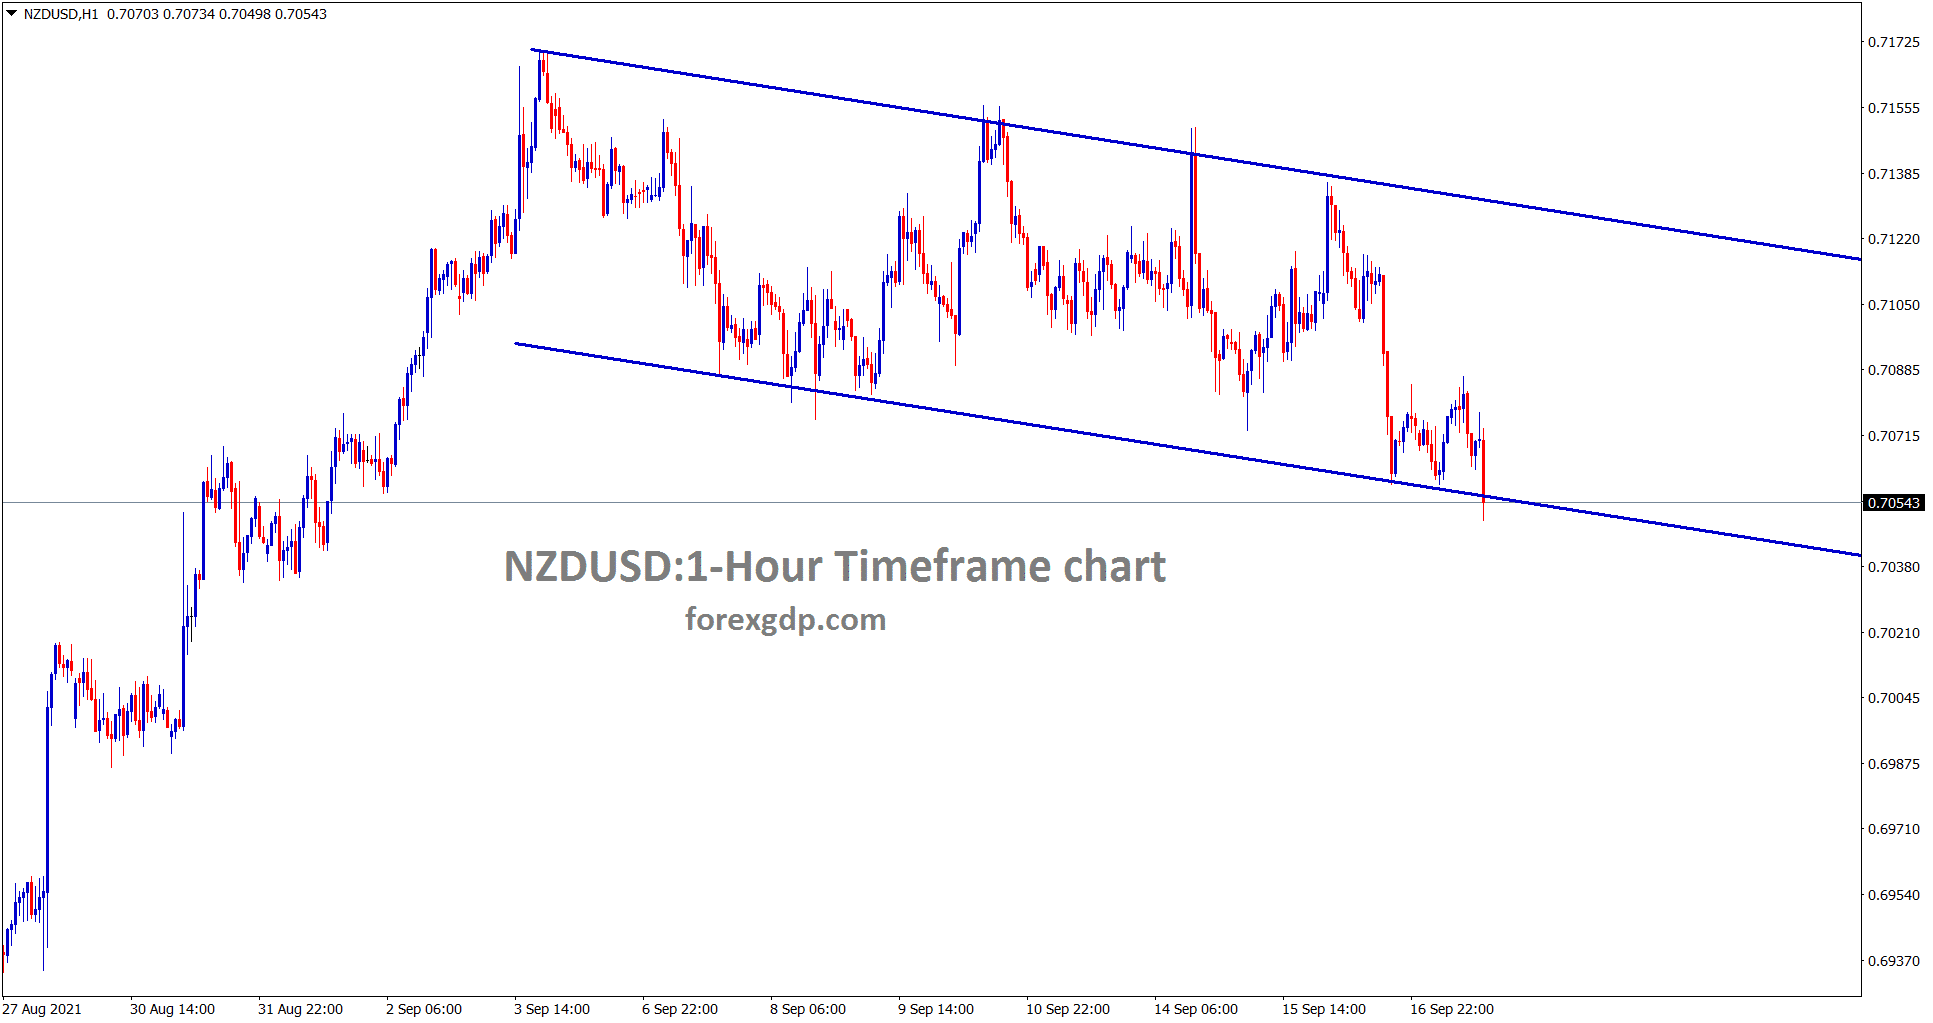 NZDUUSD is consolidating between the channel line